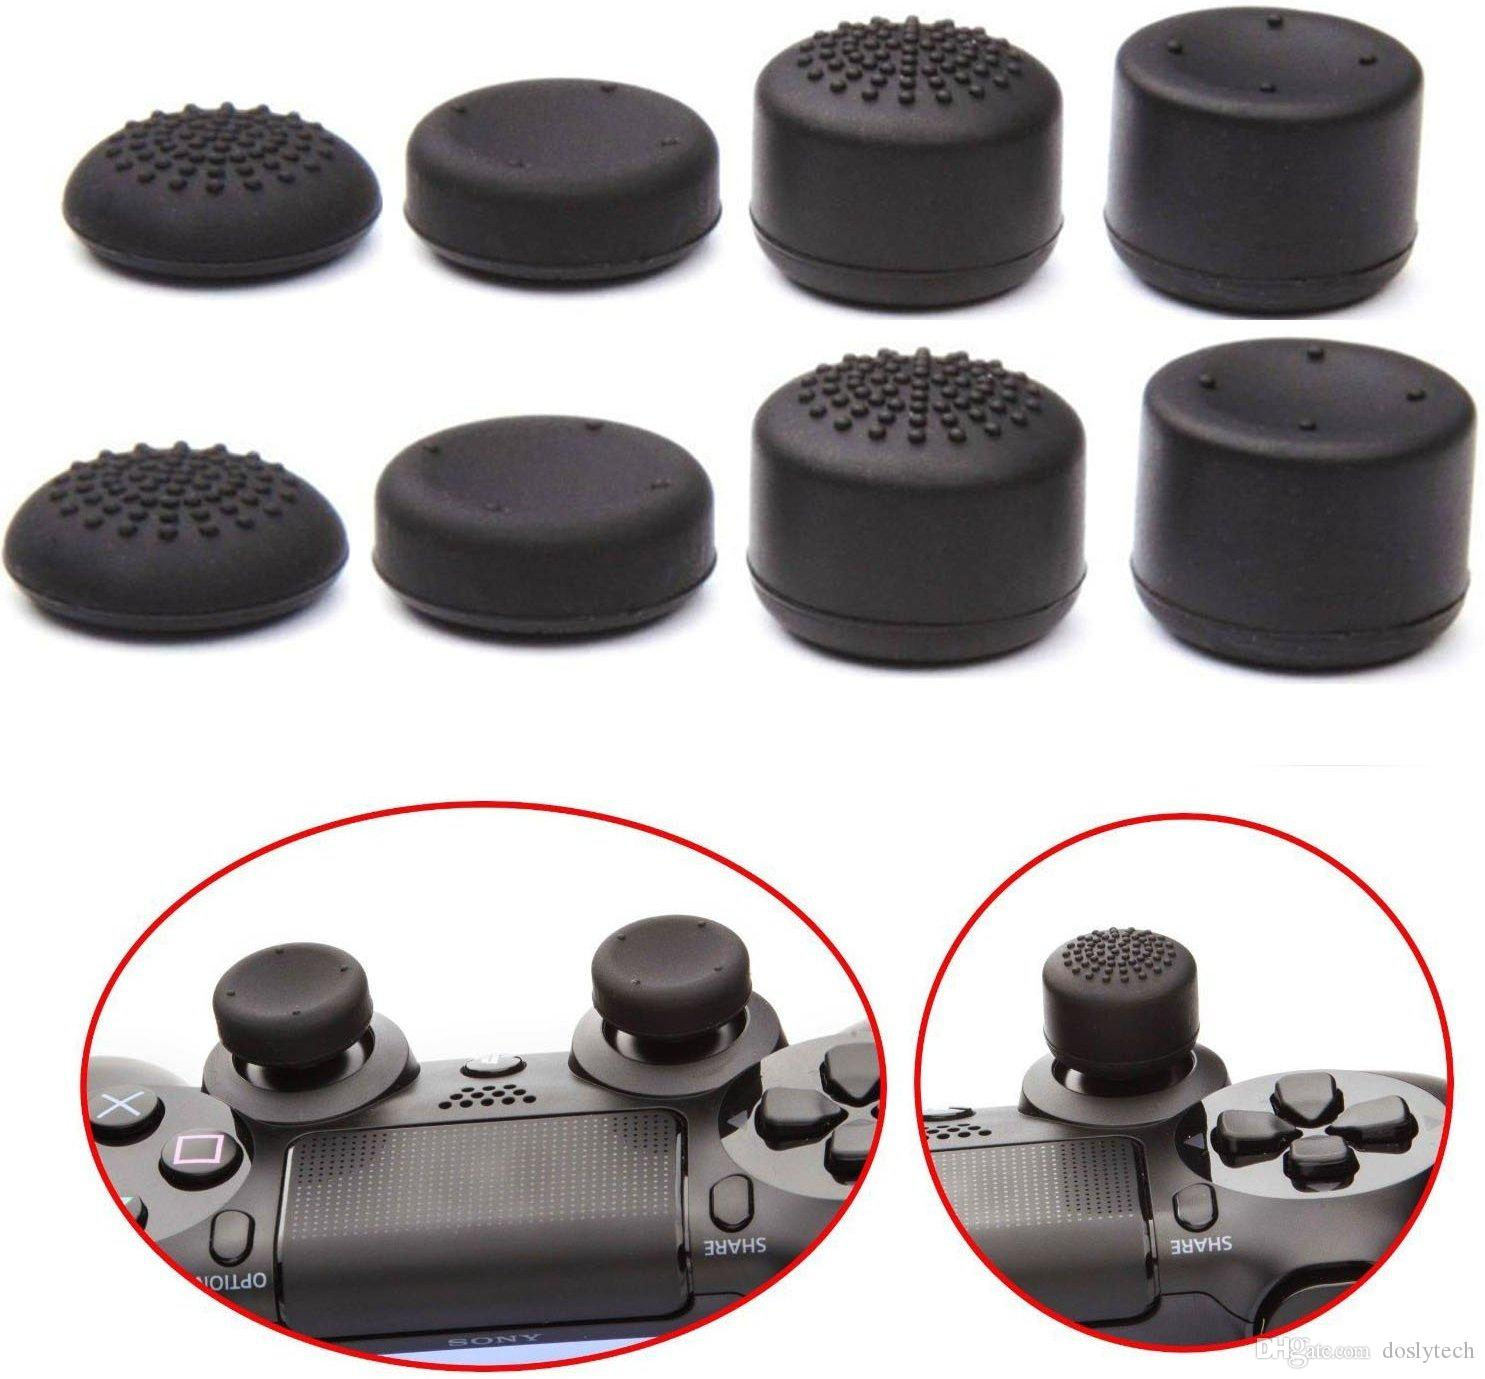 Pack of Pandaren Thumb Grip Thumbstick for PS2, PS3, PS4, Xbox 360, Wii U Controller